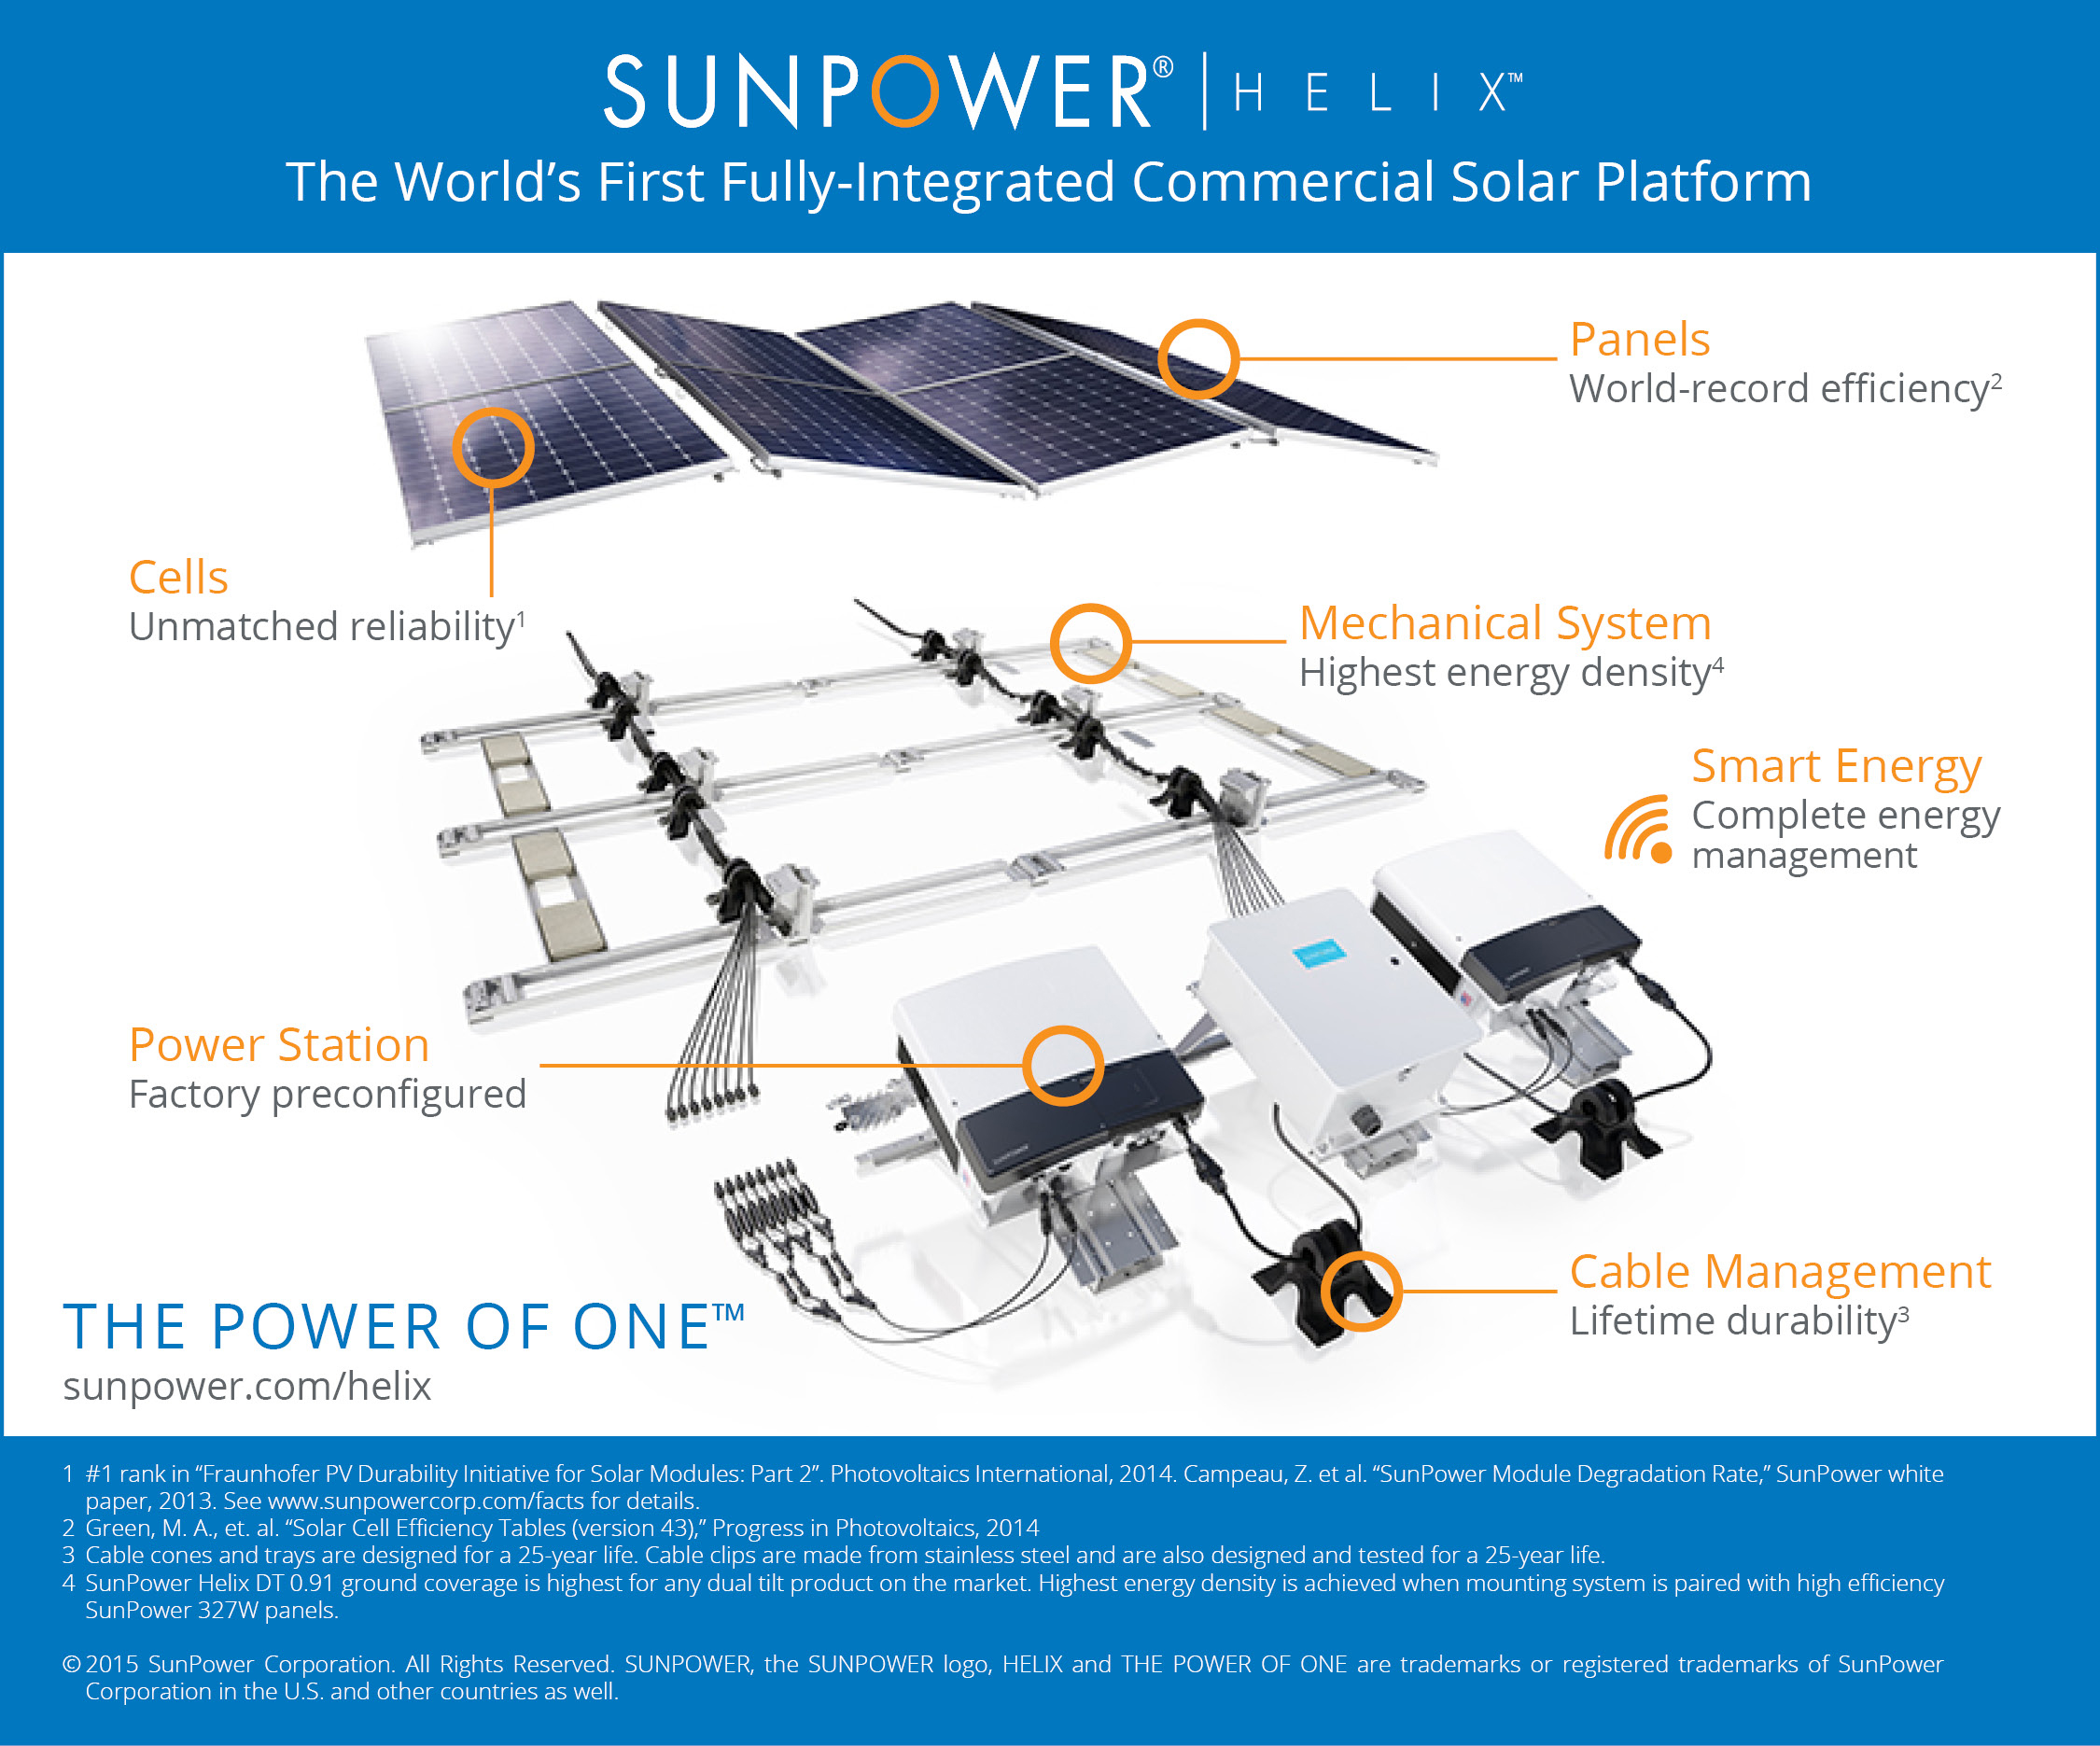 Sunpower 174 Helix Platform Is The World S First Fully